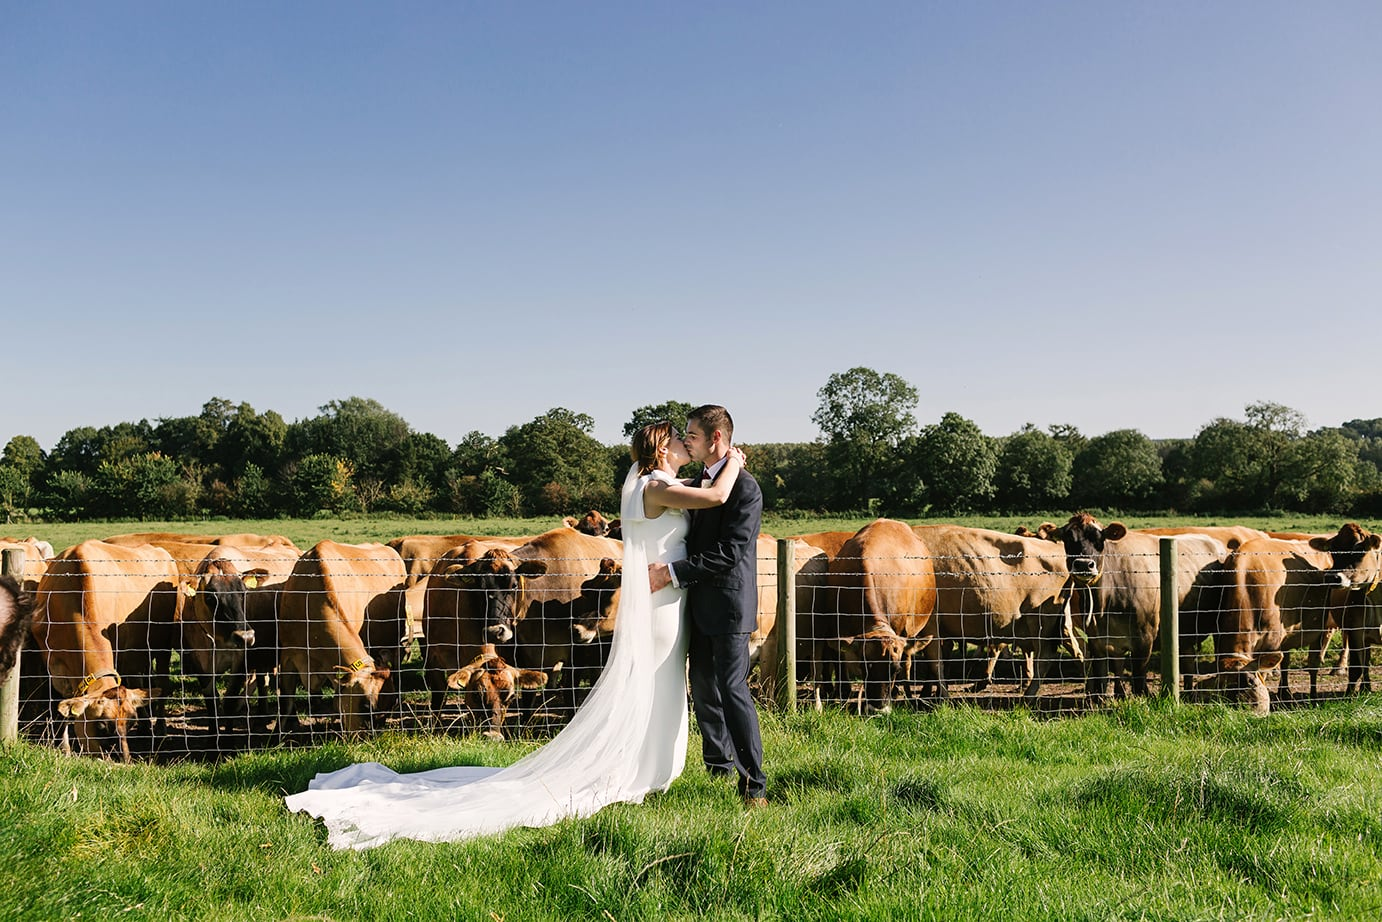 Farmers wedding with cows